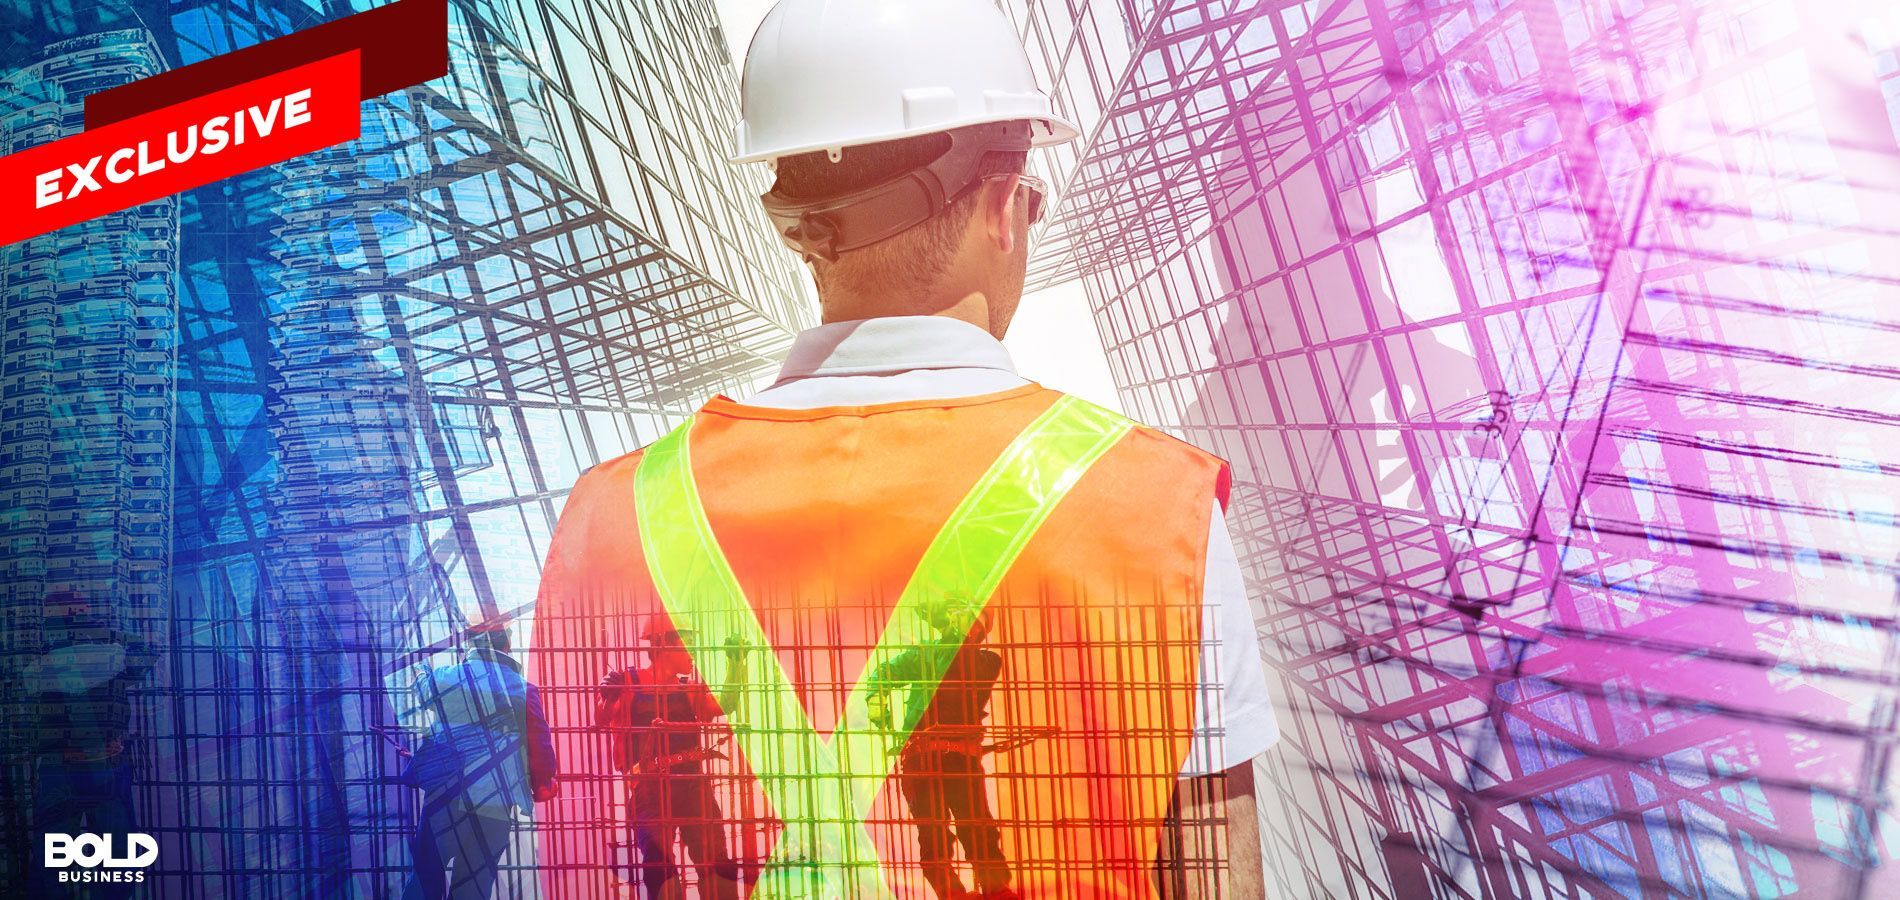 Man in construction uniform and hardhat surrounded by architecture renderings